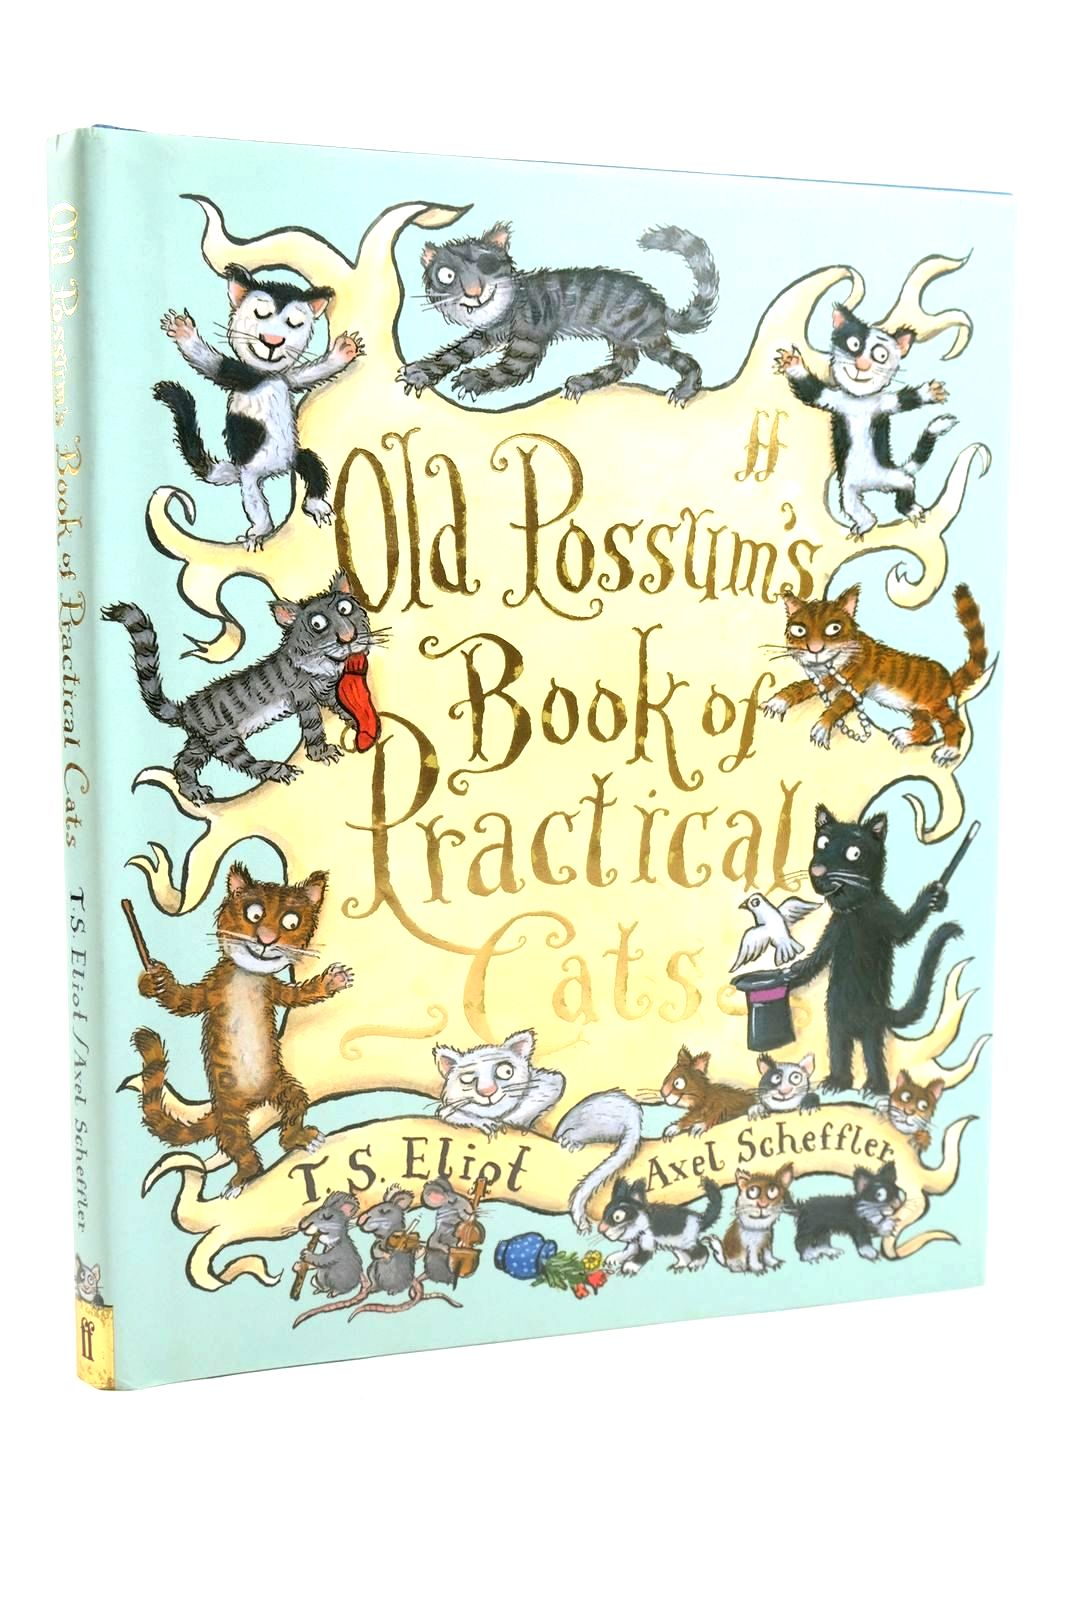 Photo of OLD POSSUM'S BOOK OF PRACTICAL CATS written by Eliot, T.S. illustrated by Scheffler, Axel published by Faber & Faber (STOCK CODE: 1319888)  for sale by Stella & Rose's Books